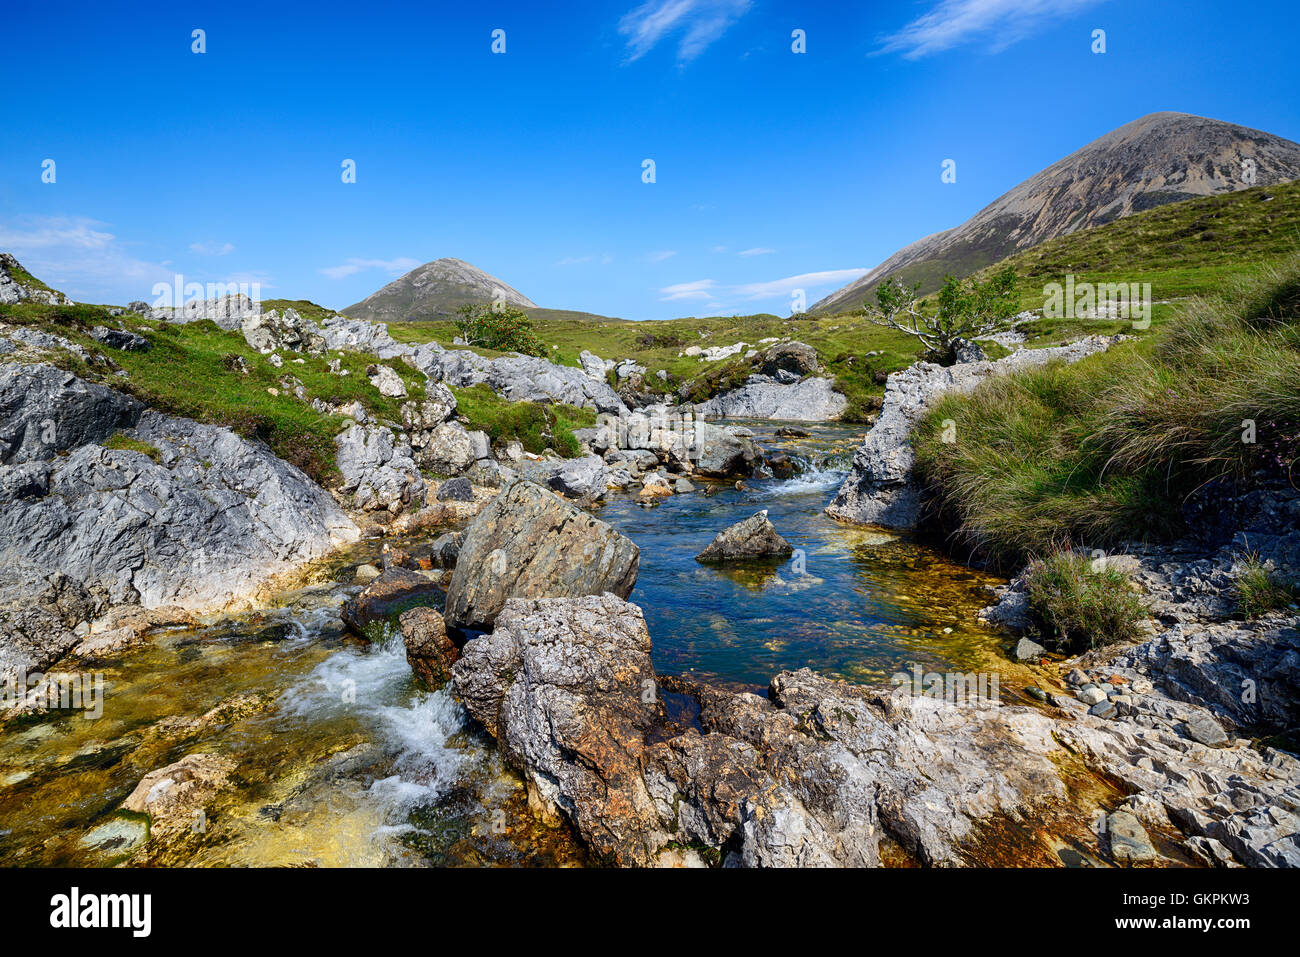 The Allt Aisridh tumbles over rocks and cascades on its way in to Loch Saplin at Torrin on the Isle of Skye in Scotland - Stock Image